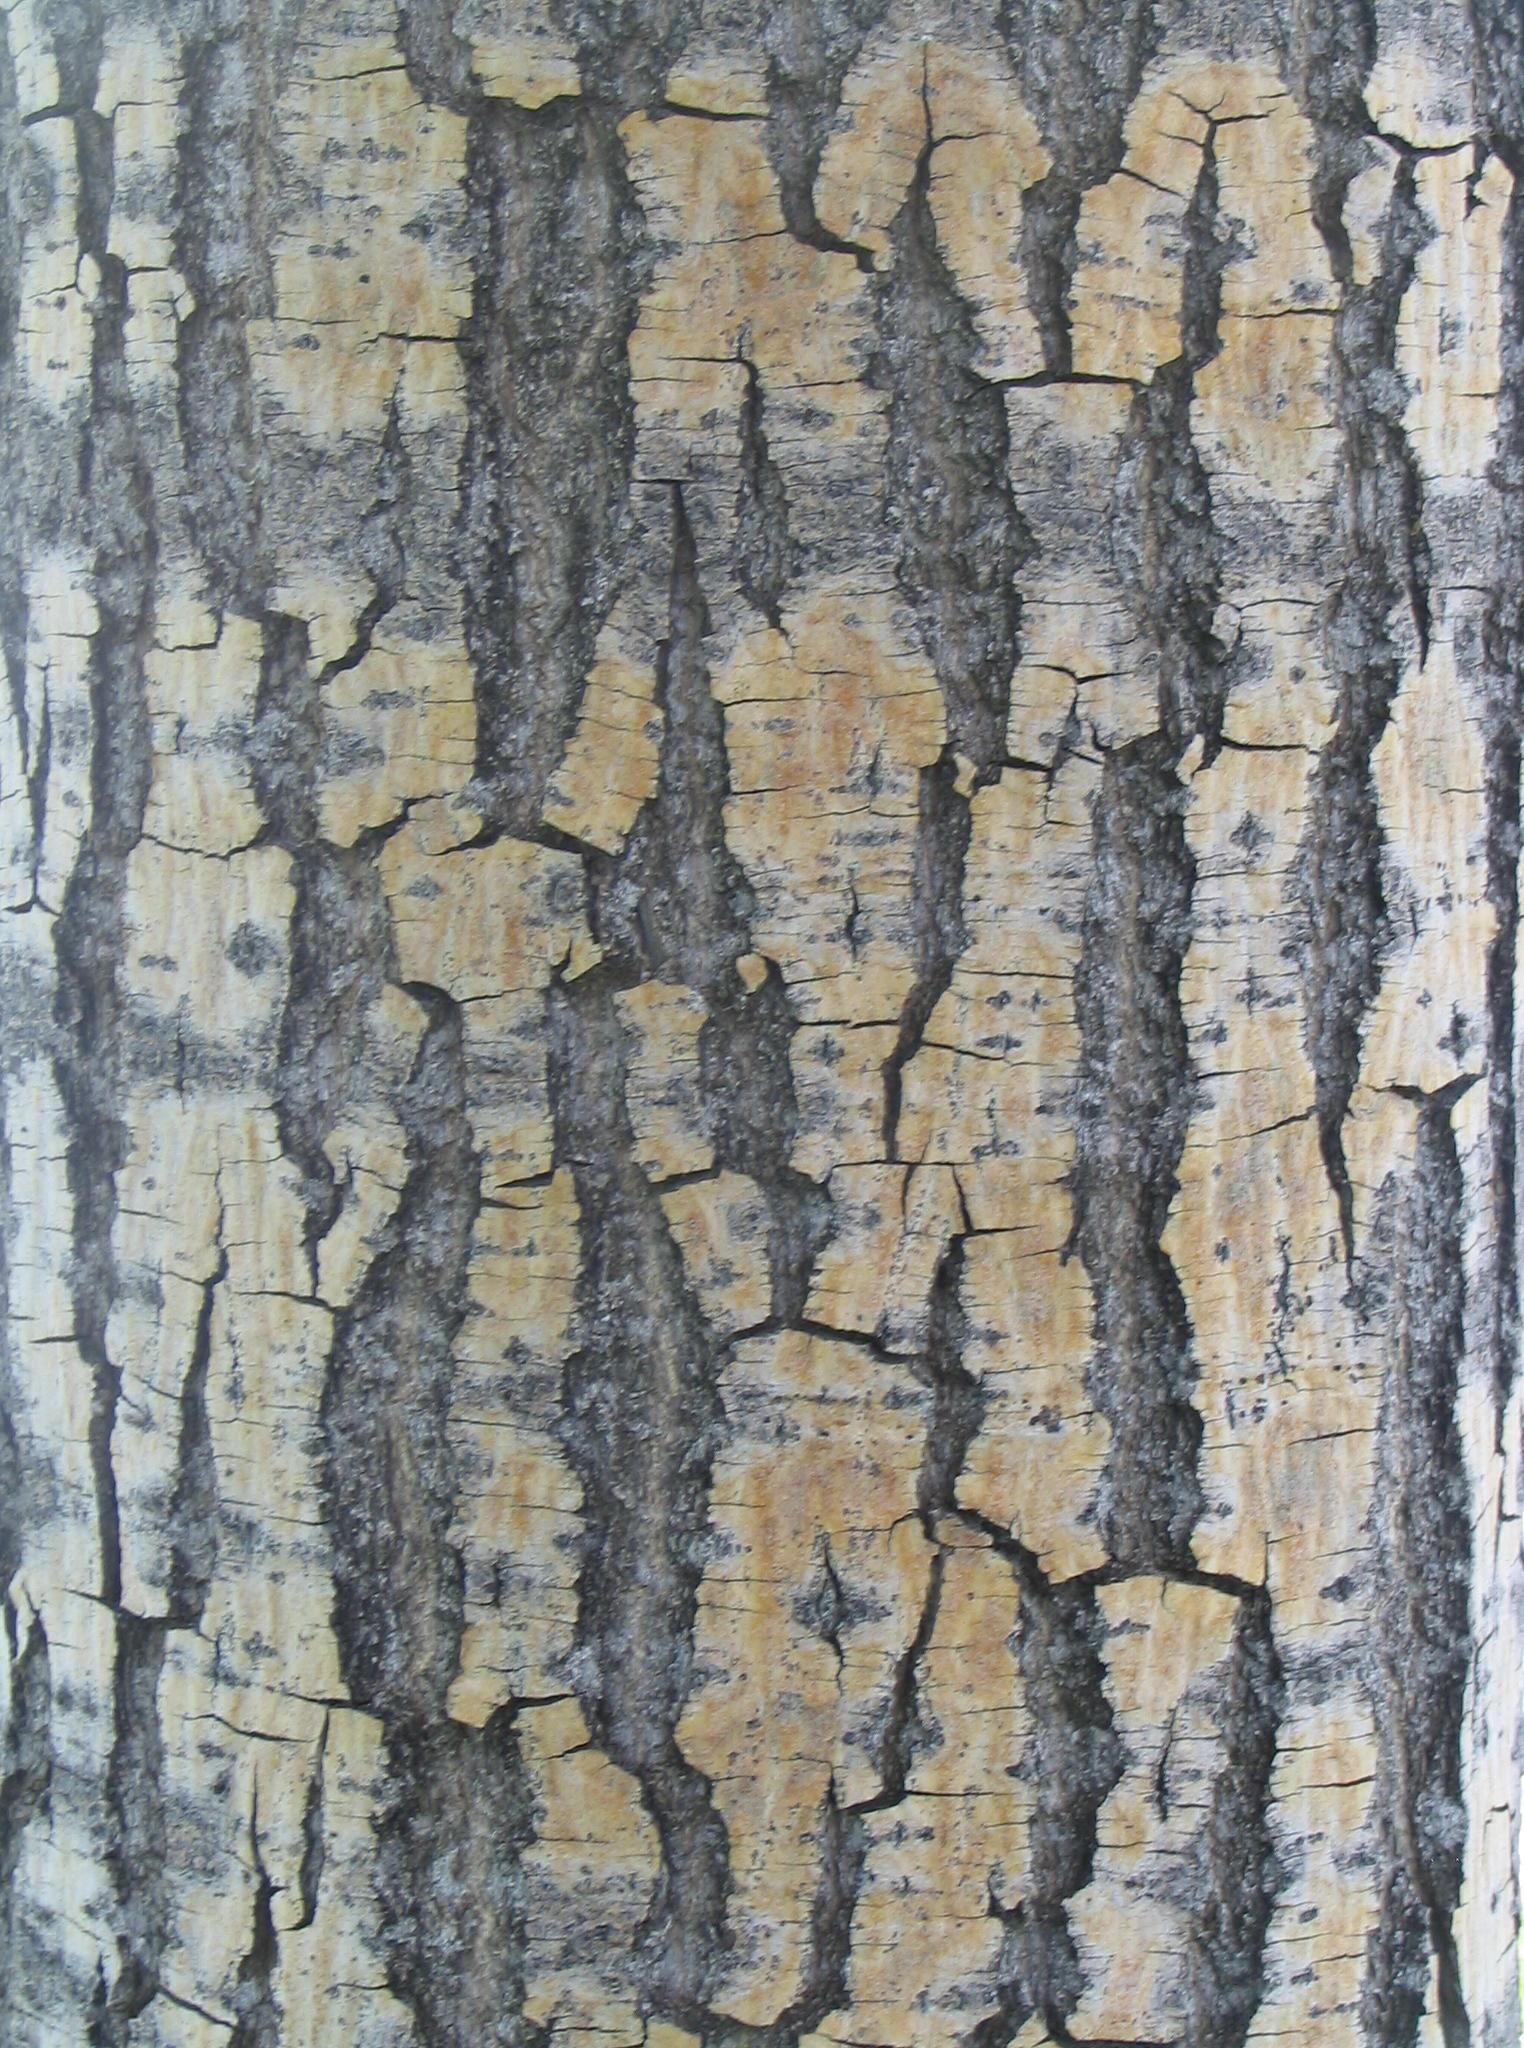 File:Bark texture wood.jpg - Wikimedia Commons: commons.wikimedia.org/wiki/File:Bark_texture_wood.jpg